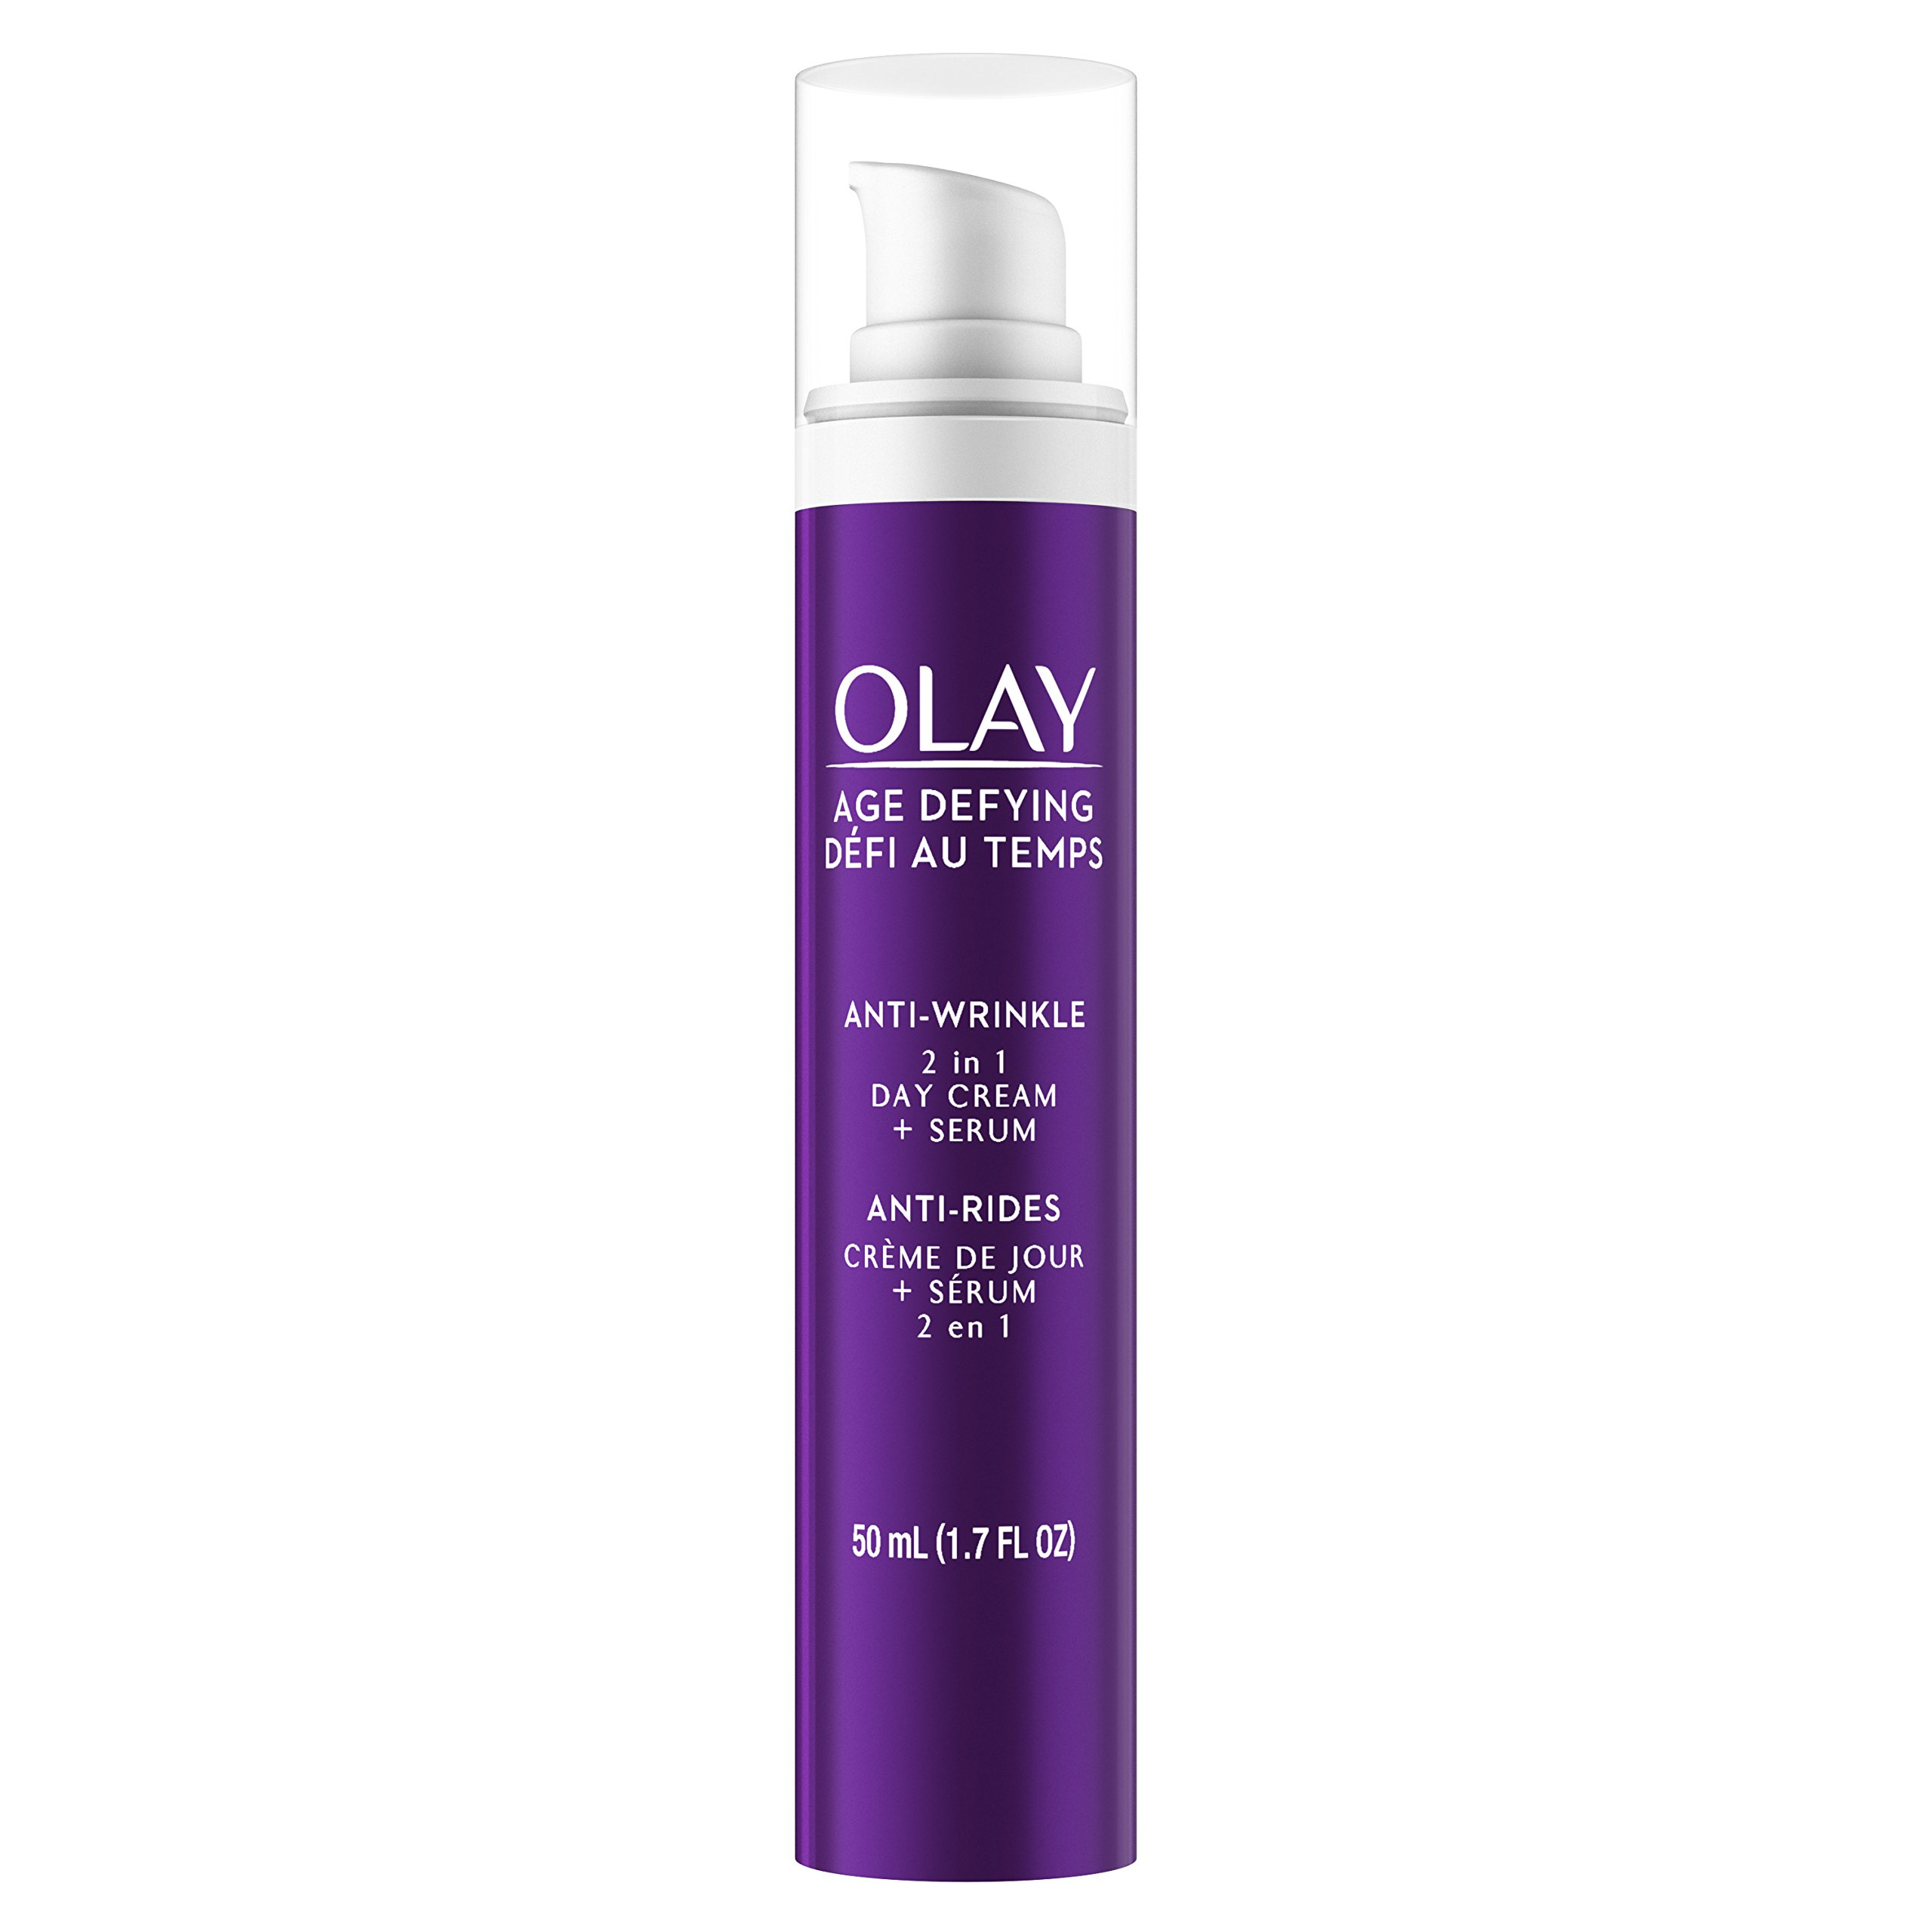 Olay Defying Anti Wrinkle Cream Serum